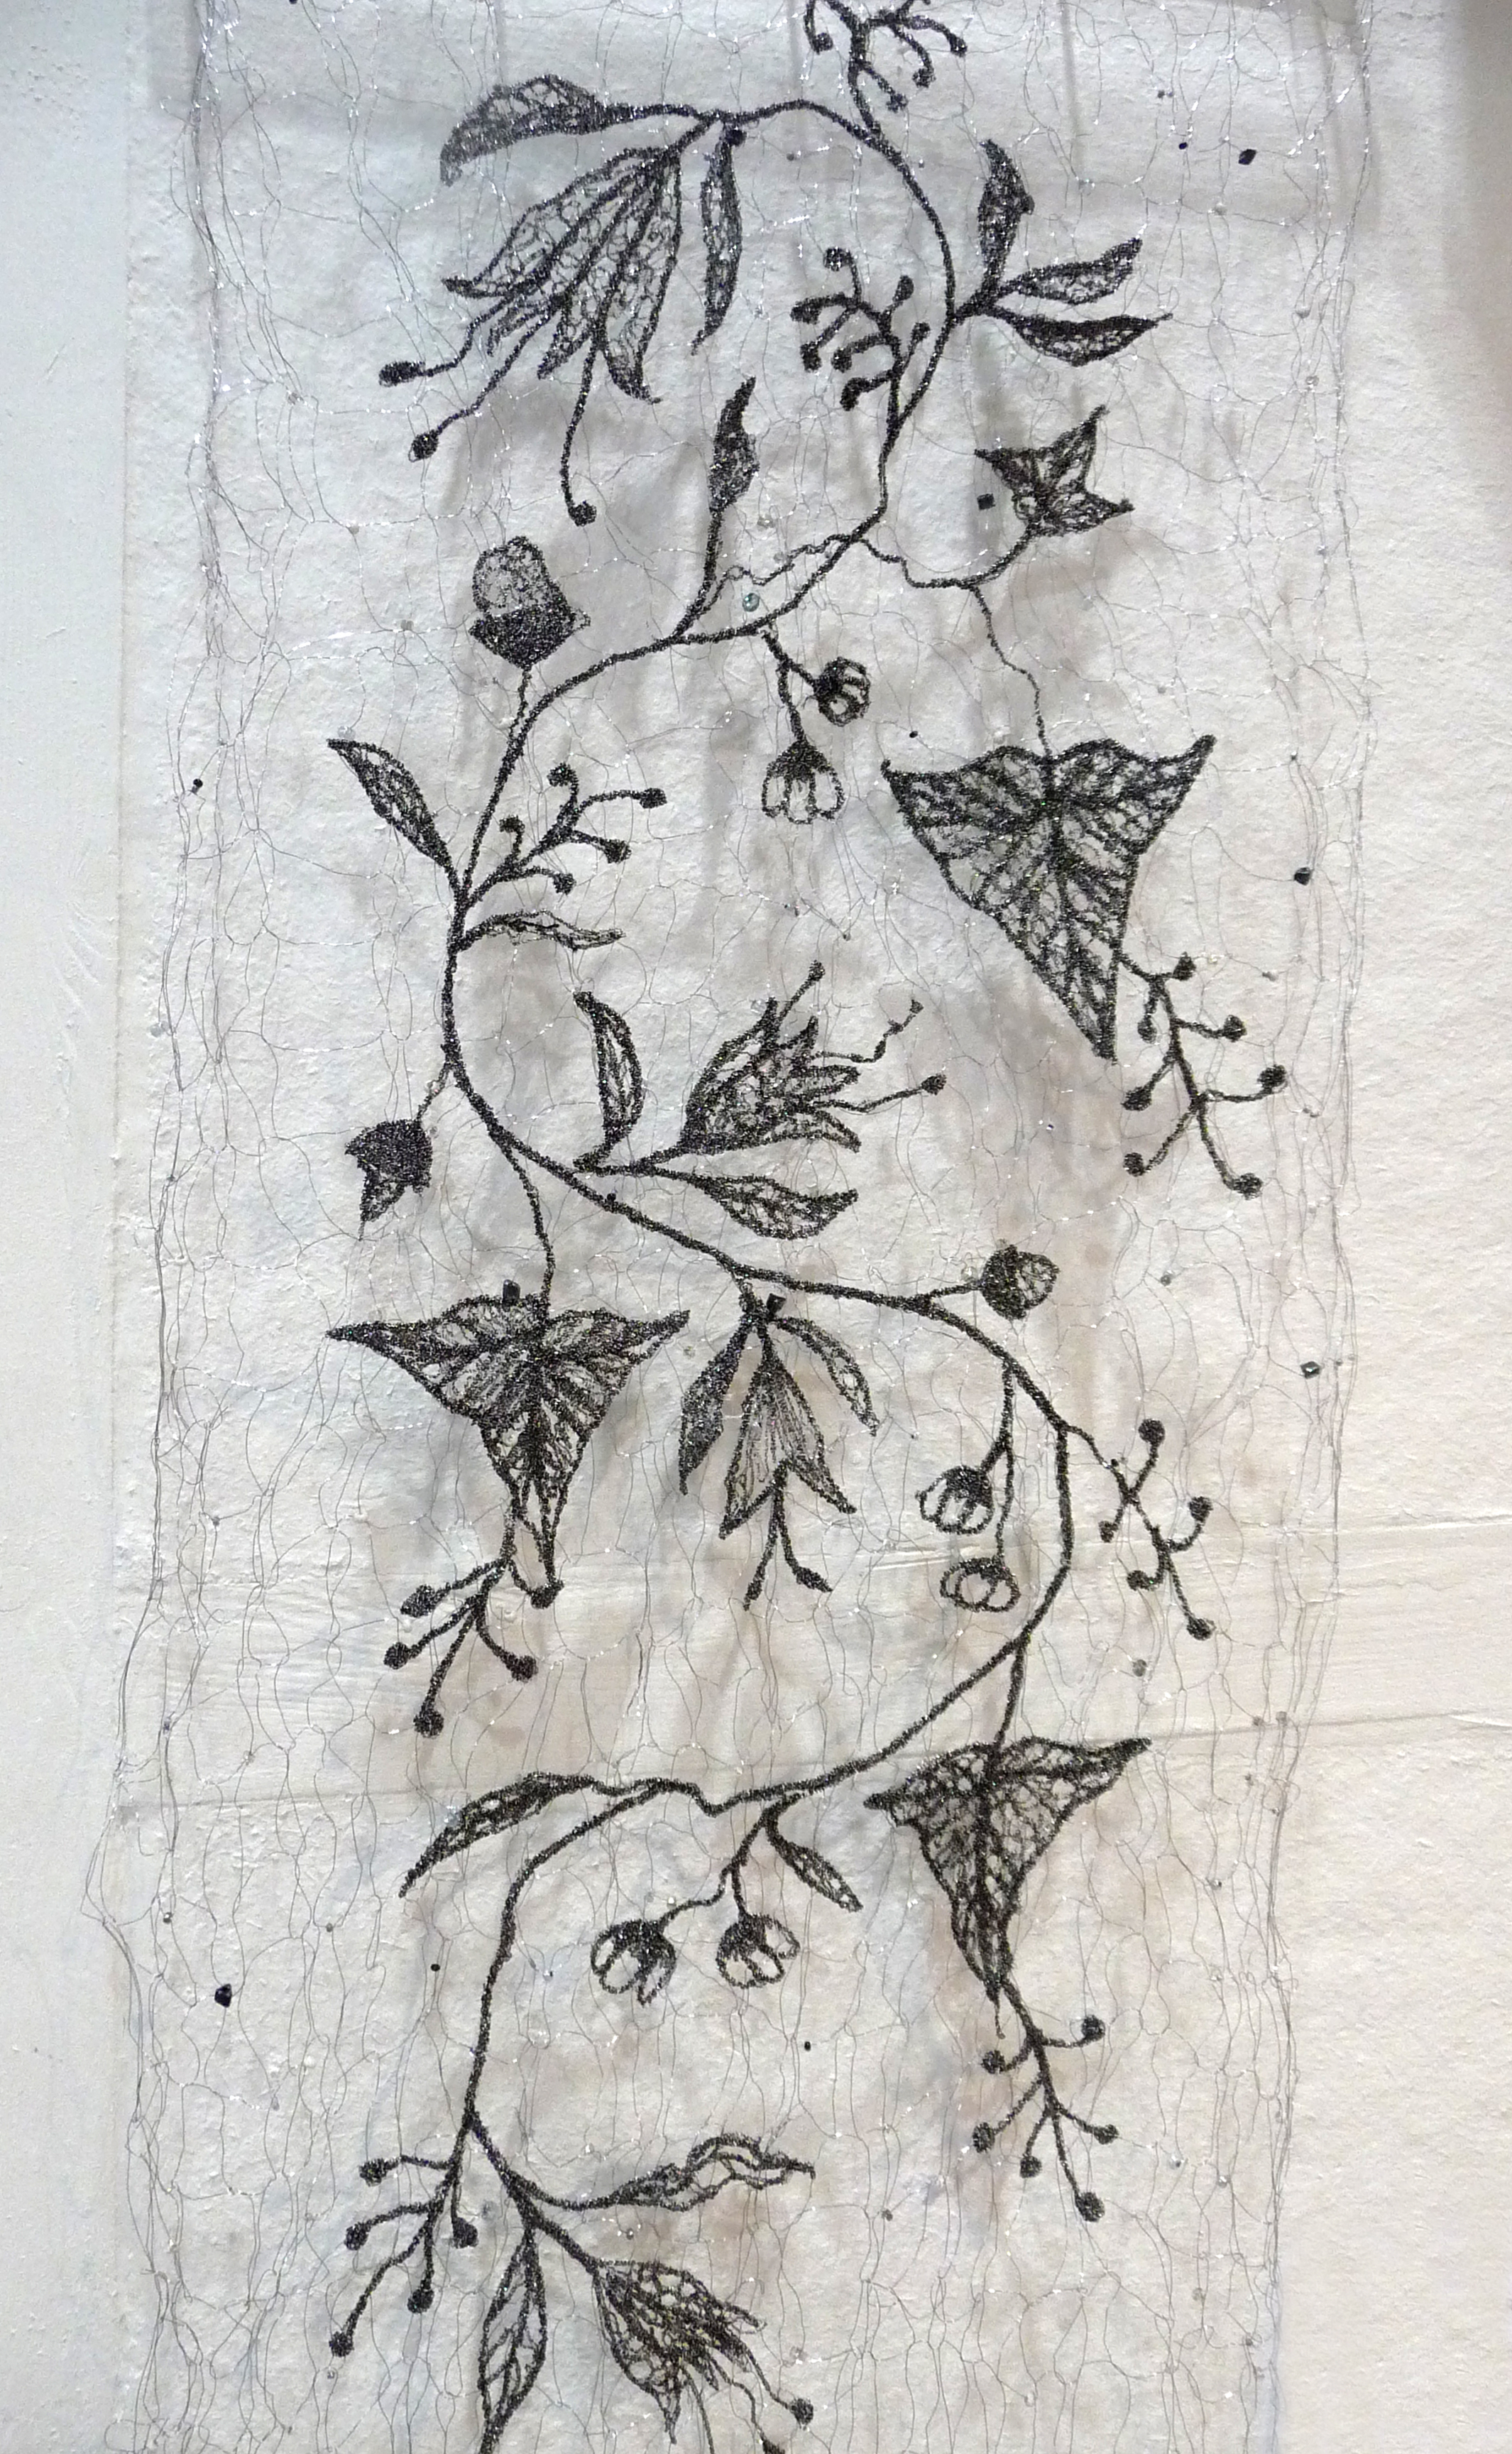 FLOWERS OF PLAS TAN Y BWLCH by Moya McCarthy, free machine embroidery on a beaded knitted wire background